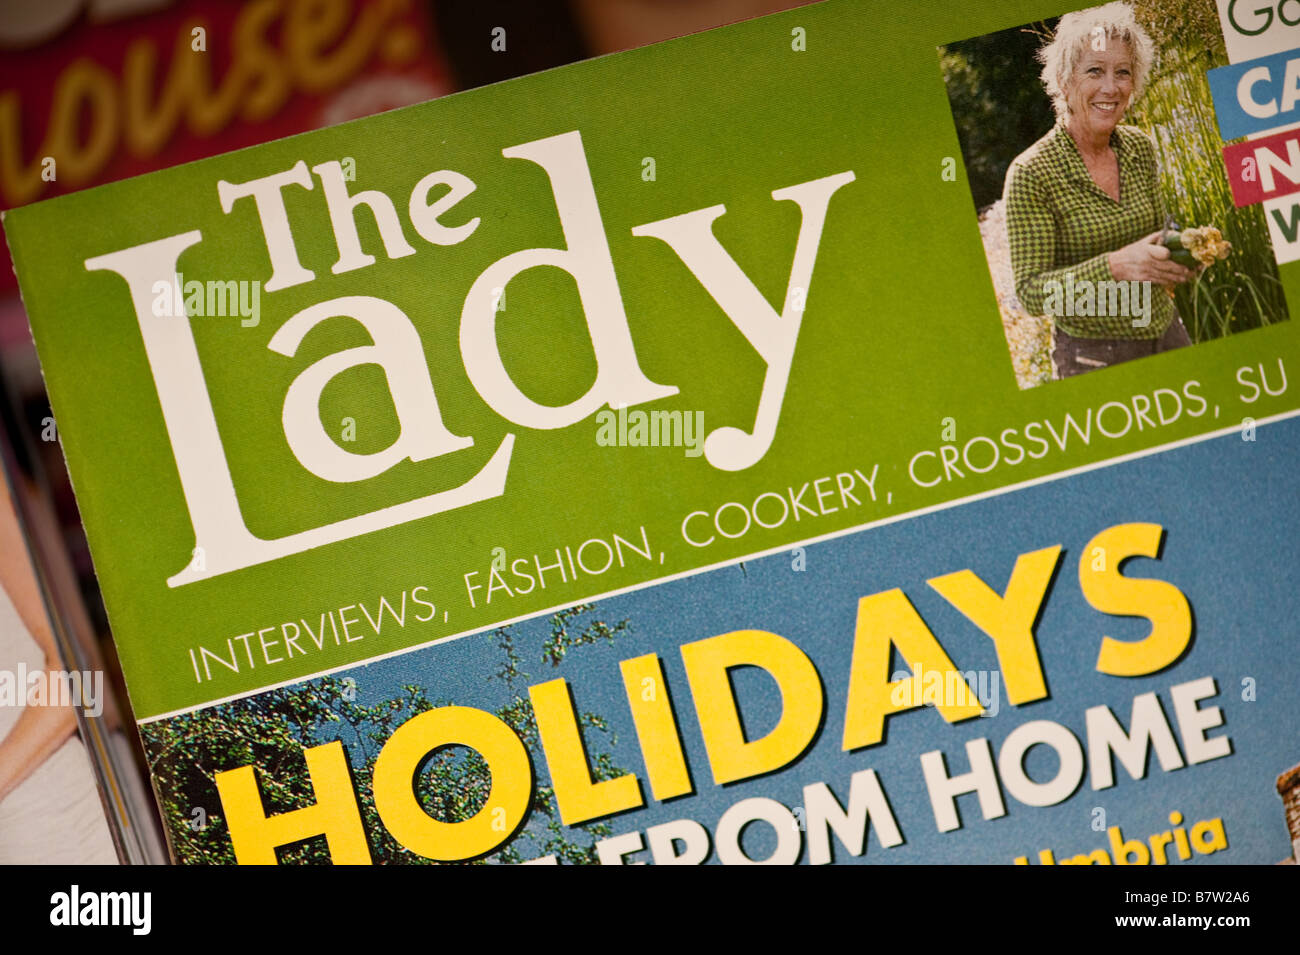 UK Magazine - the front cover of  The Lady in a newsagents shop - Stock Image